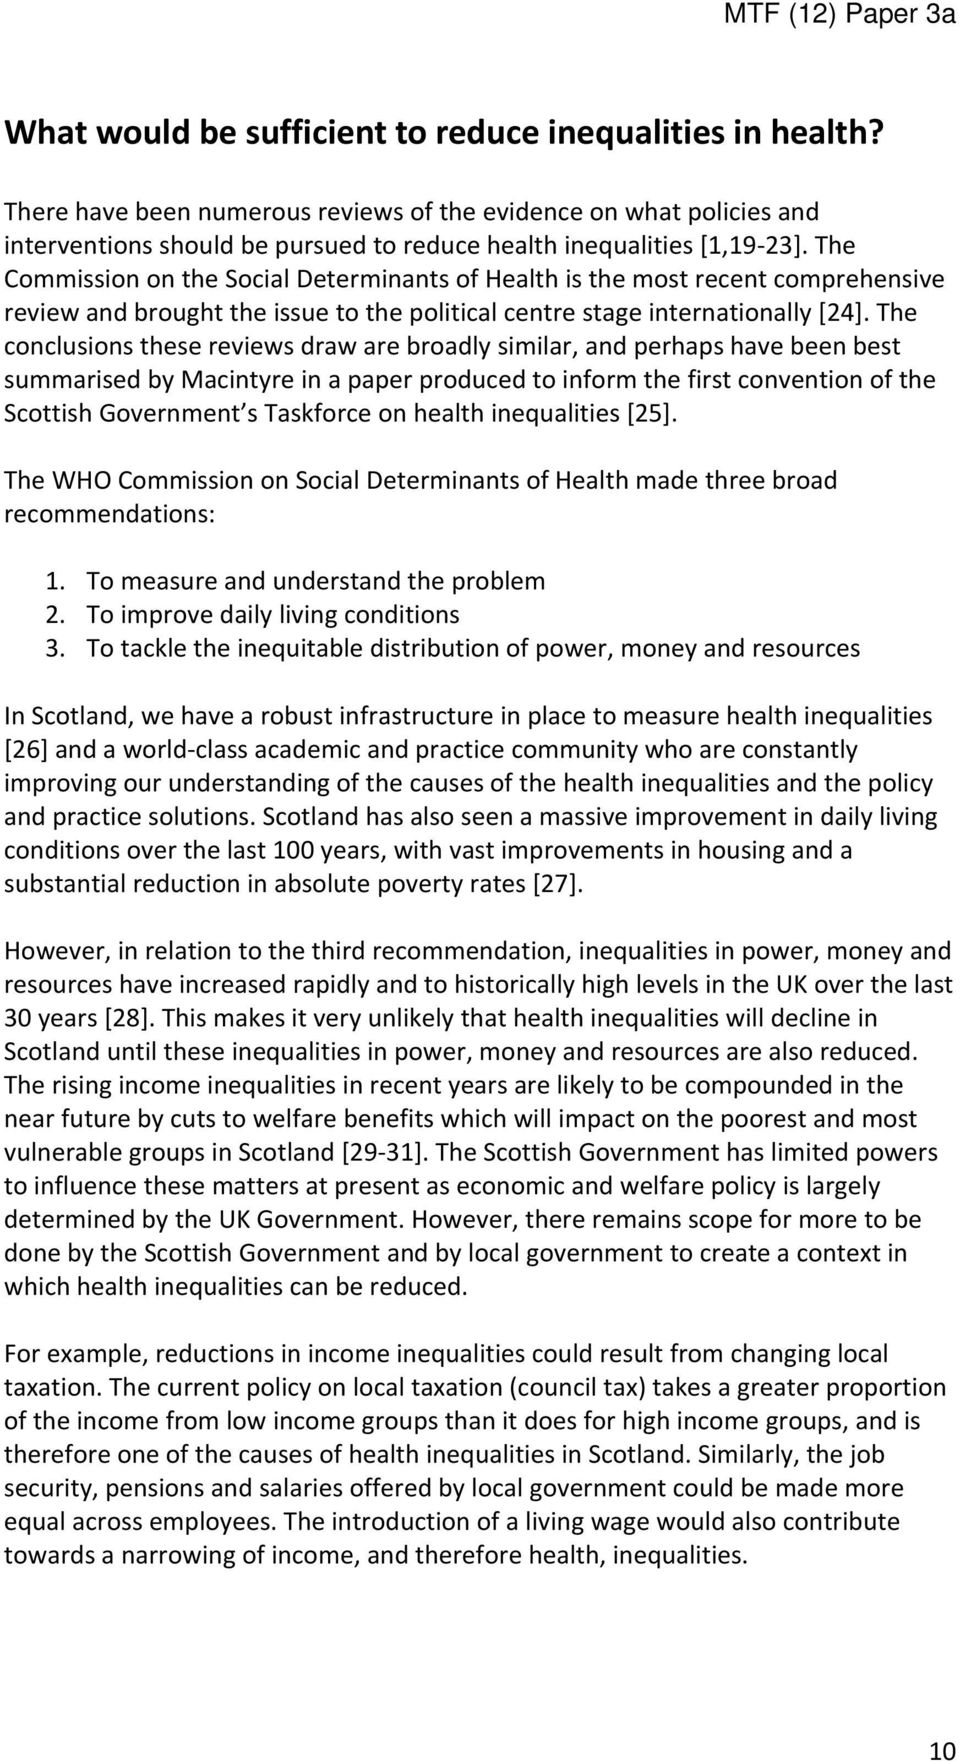 The Commission on the Social Determinants of Health is the most recent comprehensive review and brought the issue to the political centre stage internationally [24].